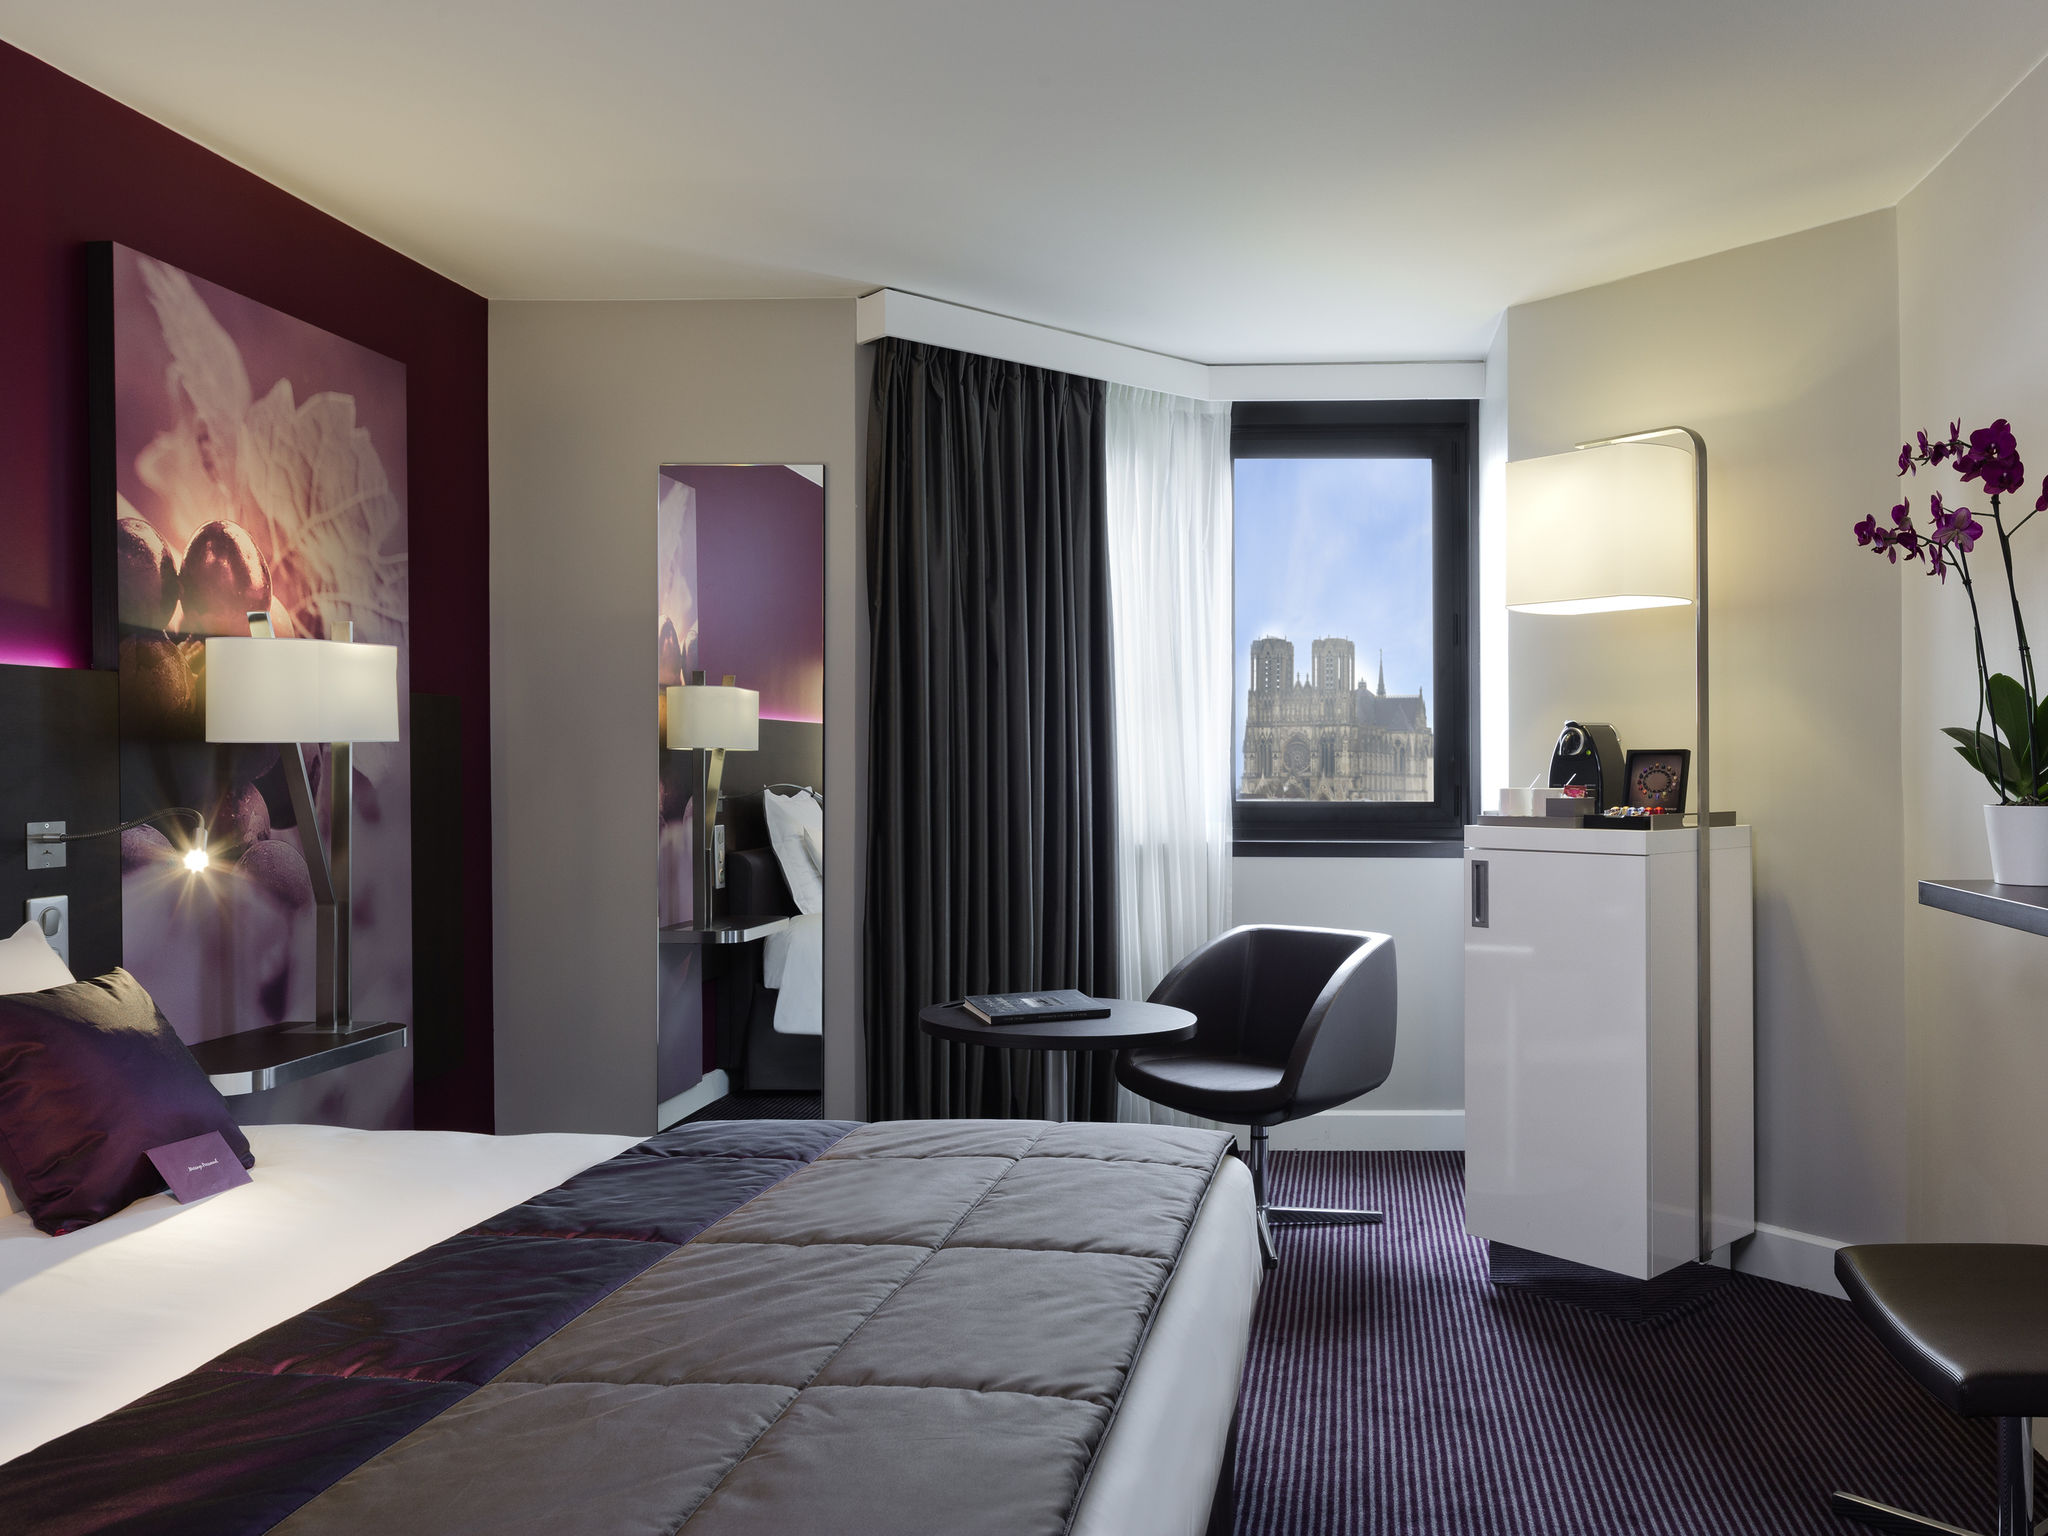 Hotel – Hotel Mercure Reims Centro Cathedrale